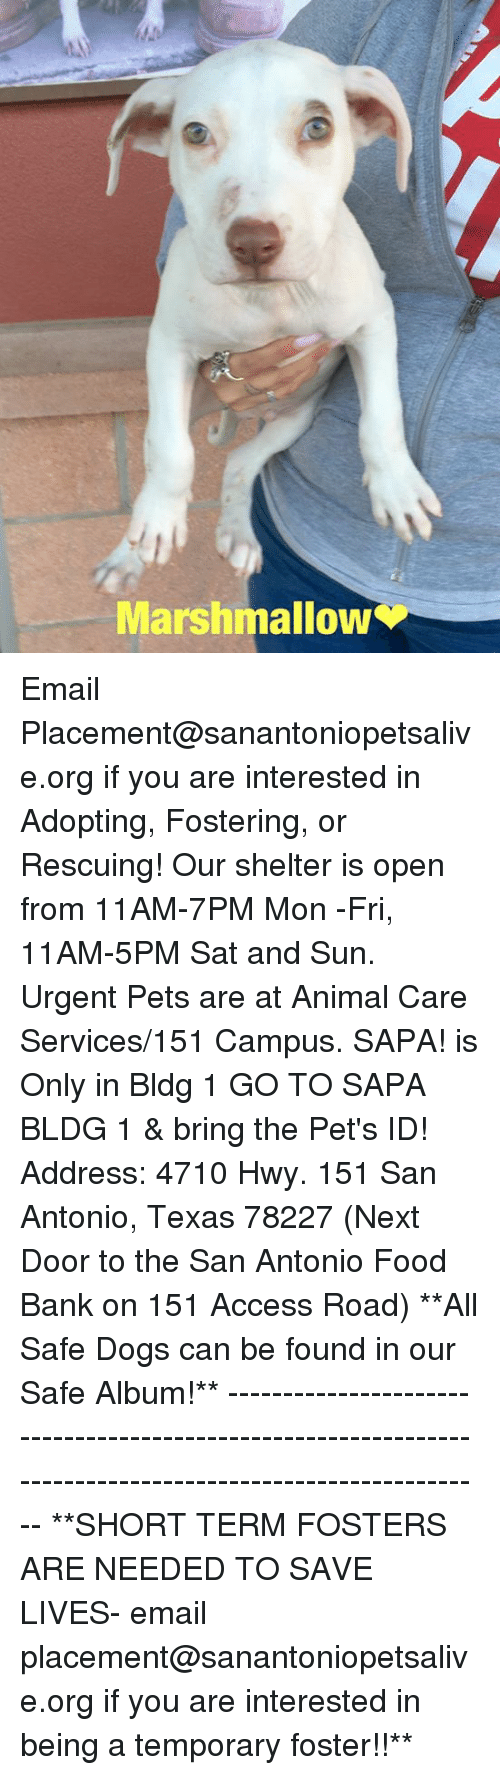 Dogs, Food, and Memes: Marshmallow Email Placement@sanantoniopetsalive.org if you are interested in Adopting, Fostering, or Rescuing!  Our shelter is open from 11AM-7PM Mon -Fri, 11AM-5PM Sat and Sun.  Urgent Pets are at Animal Care Services/151 Campus. SAPA! is Only in Bldg 1 GO TO SAPA BLDG 1 & bring the Pet's ID! Address: 4710 Hwy. 151 San Antonio, Texas 78227 (Next Door to the San Antonio Food Bank on 151 Access Road)  **All Safe Dogs can be found in our Safe Album!** ---------------------------------------------------------------------------------------------------------- **SHORT TERM FOSTERS ARE NEEDED TO SAVE LIVES- email placement@sanantoniopetsalive.org if you are interested in being a temporary foster!!**